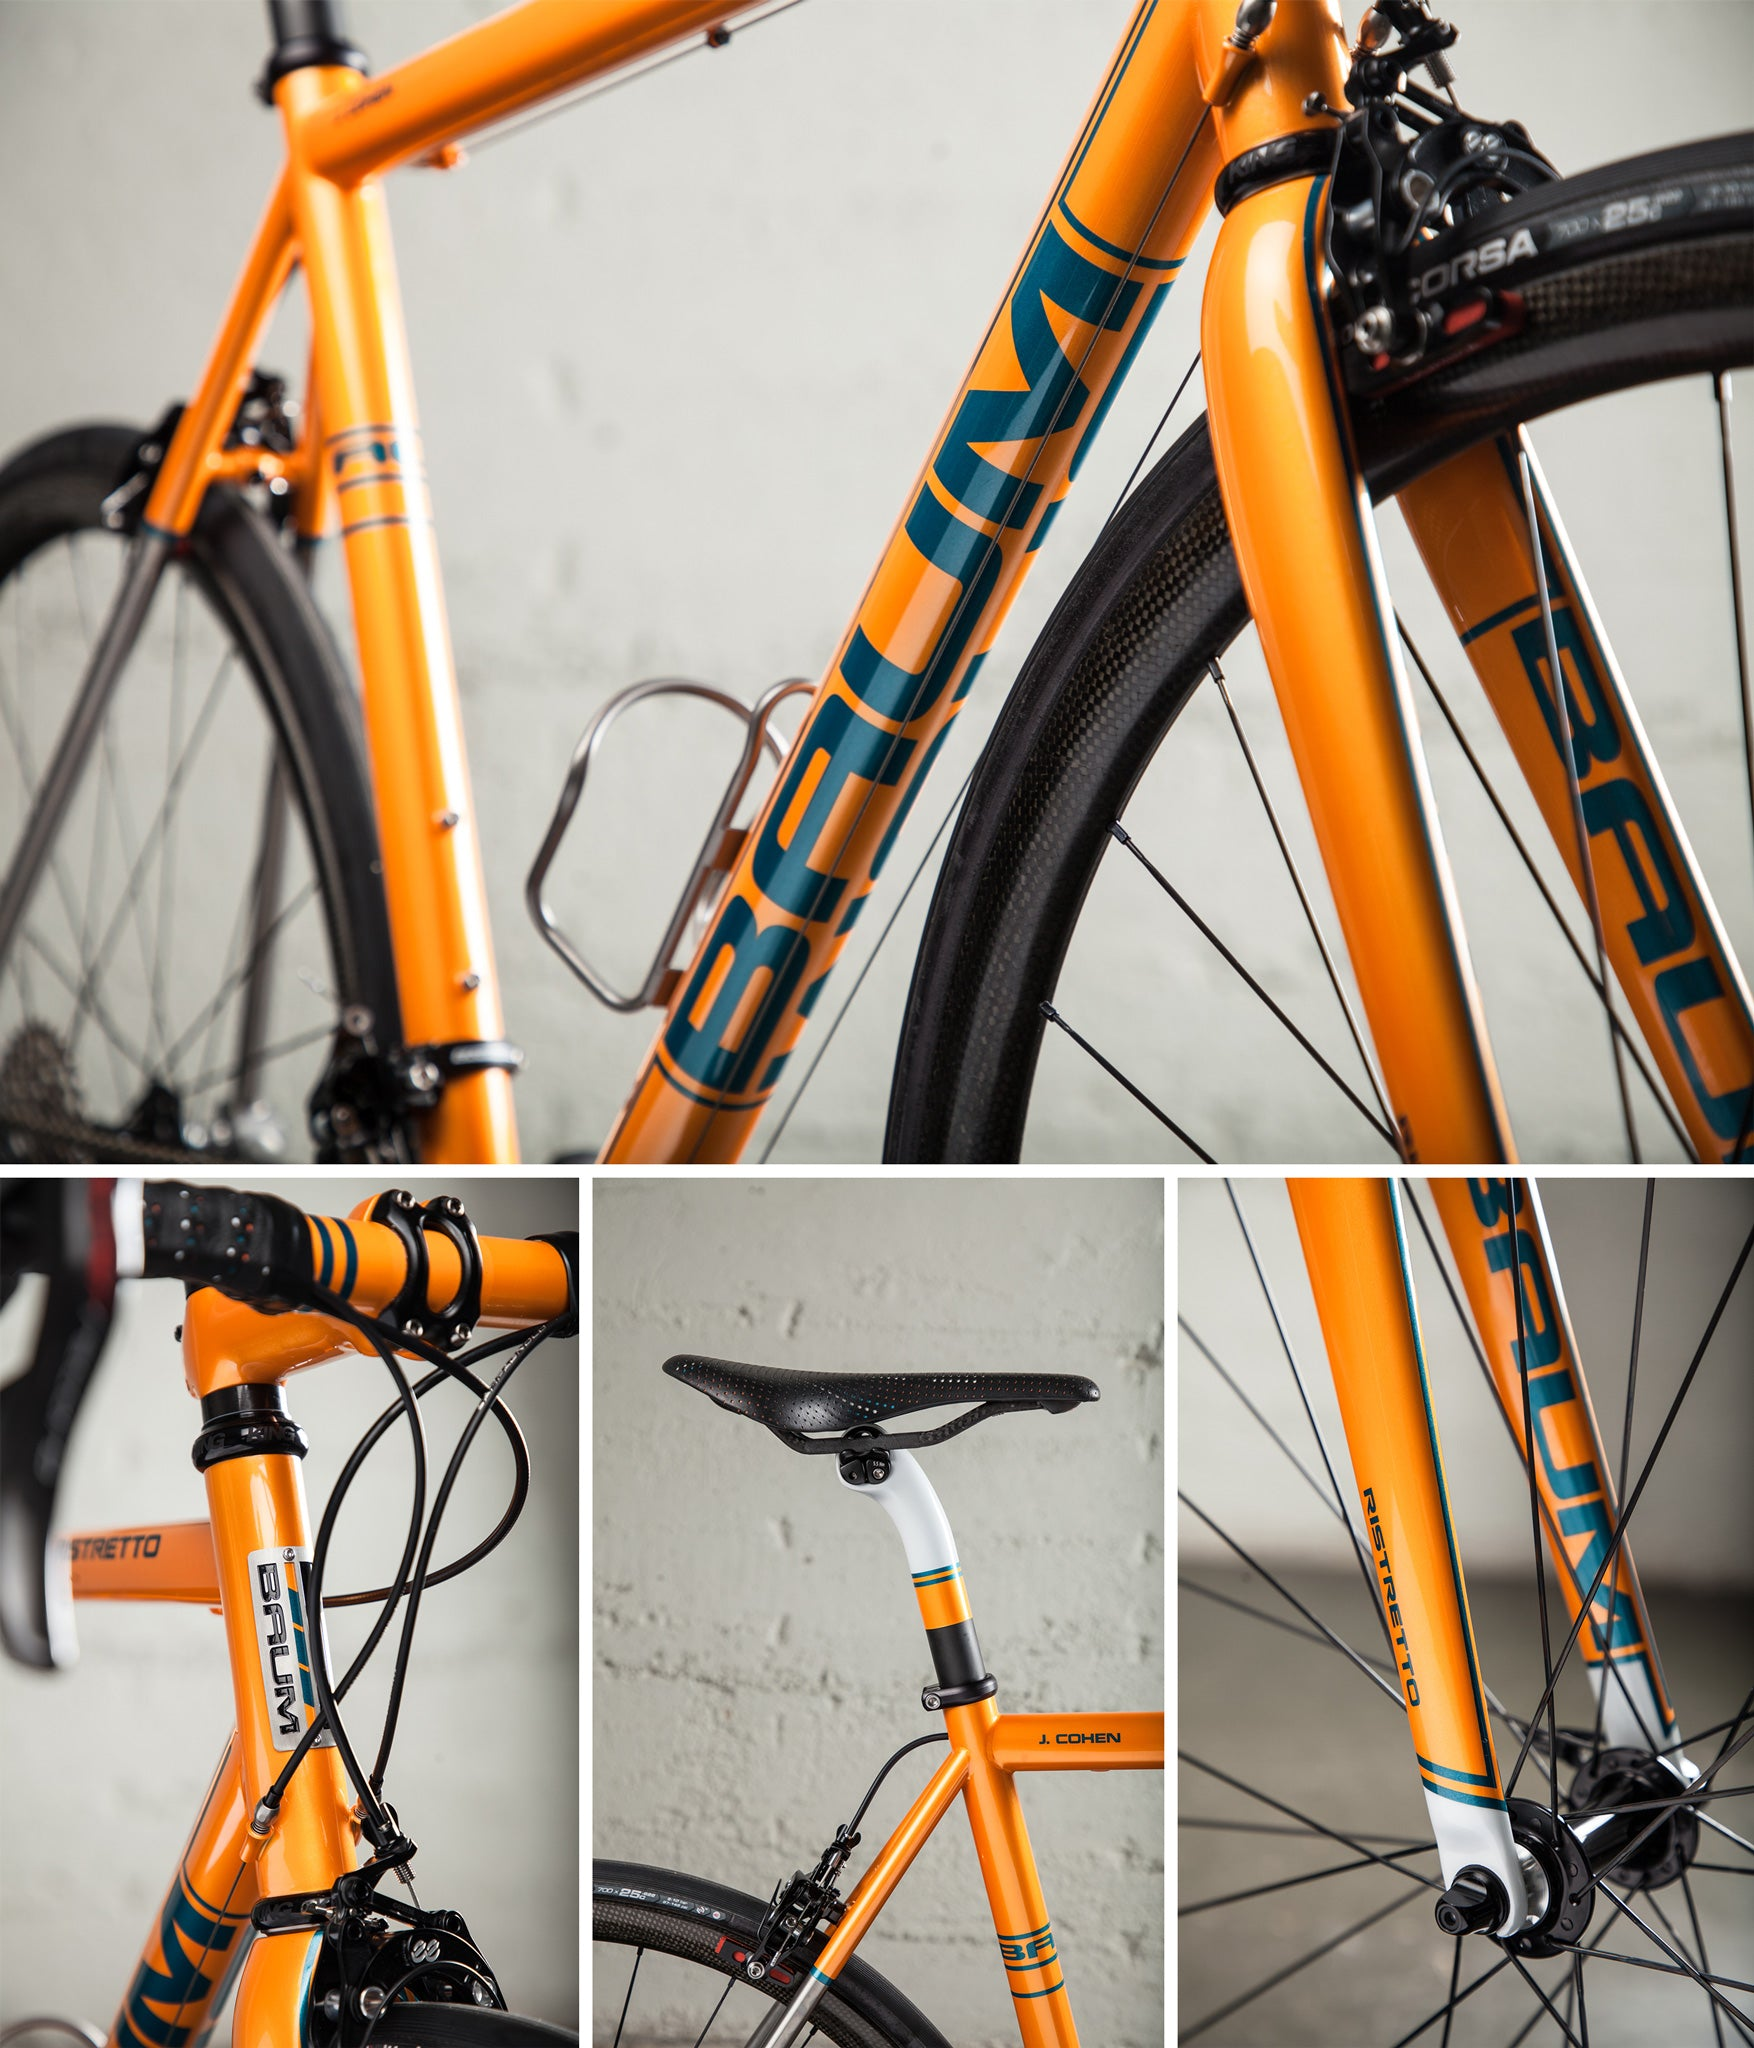 baum ristretto orange super record JC piant details